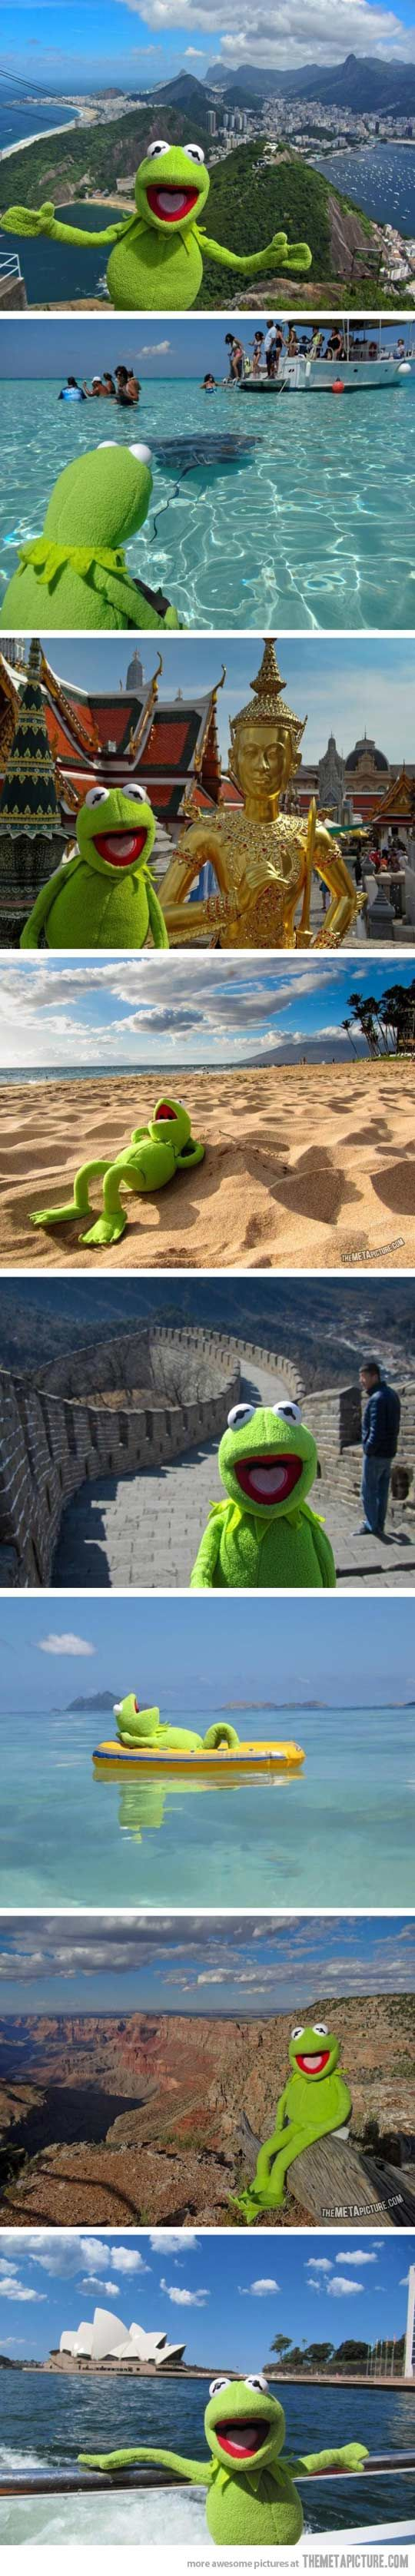 Kermit the Frog's vacation around the world…  I want to do this with my kids one day on every vacation